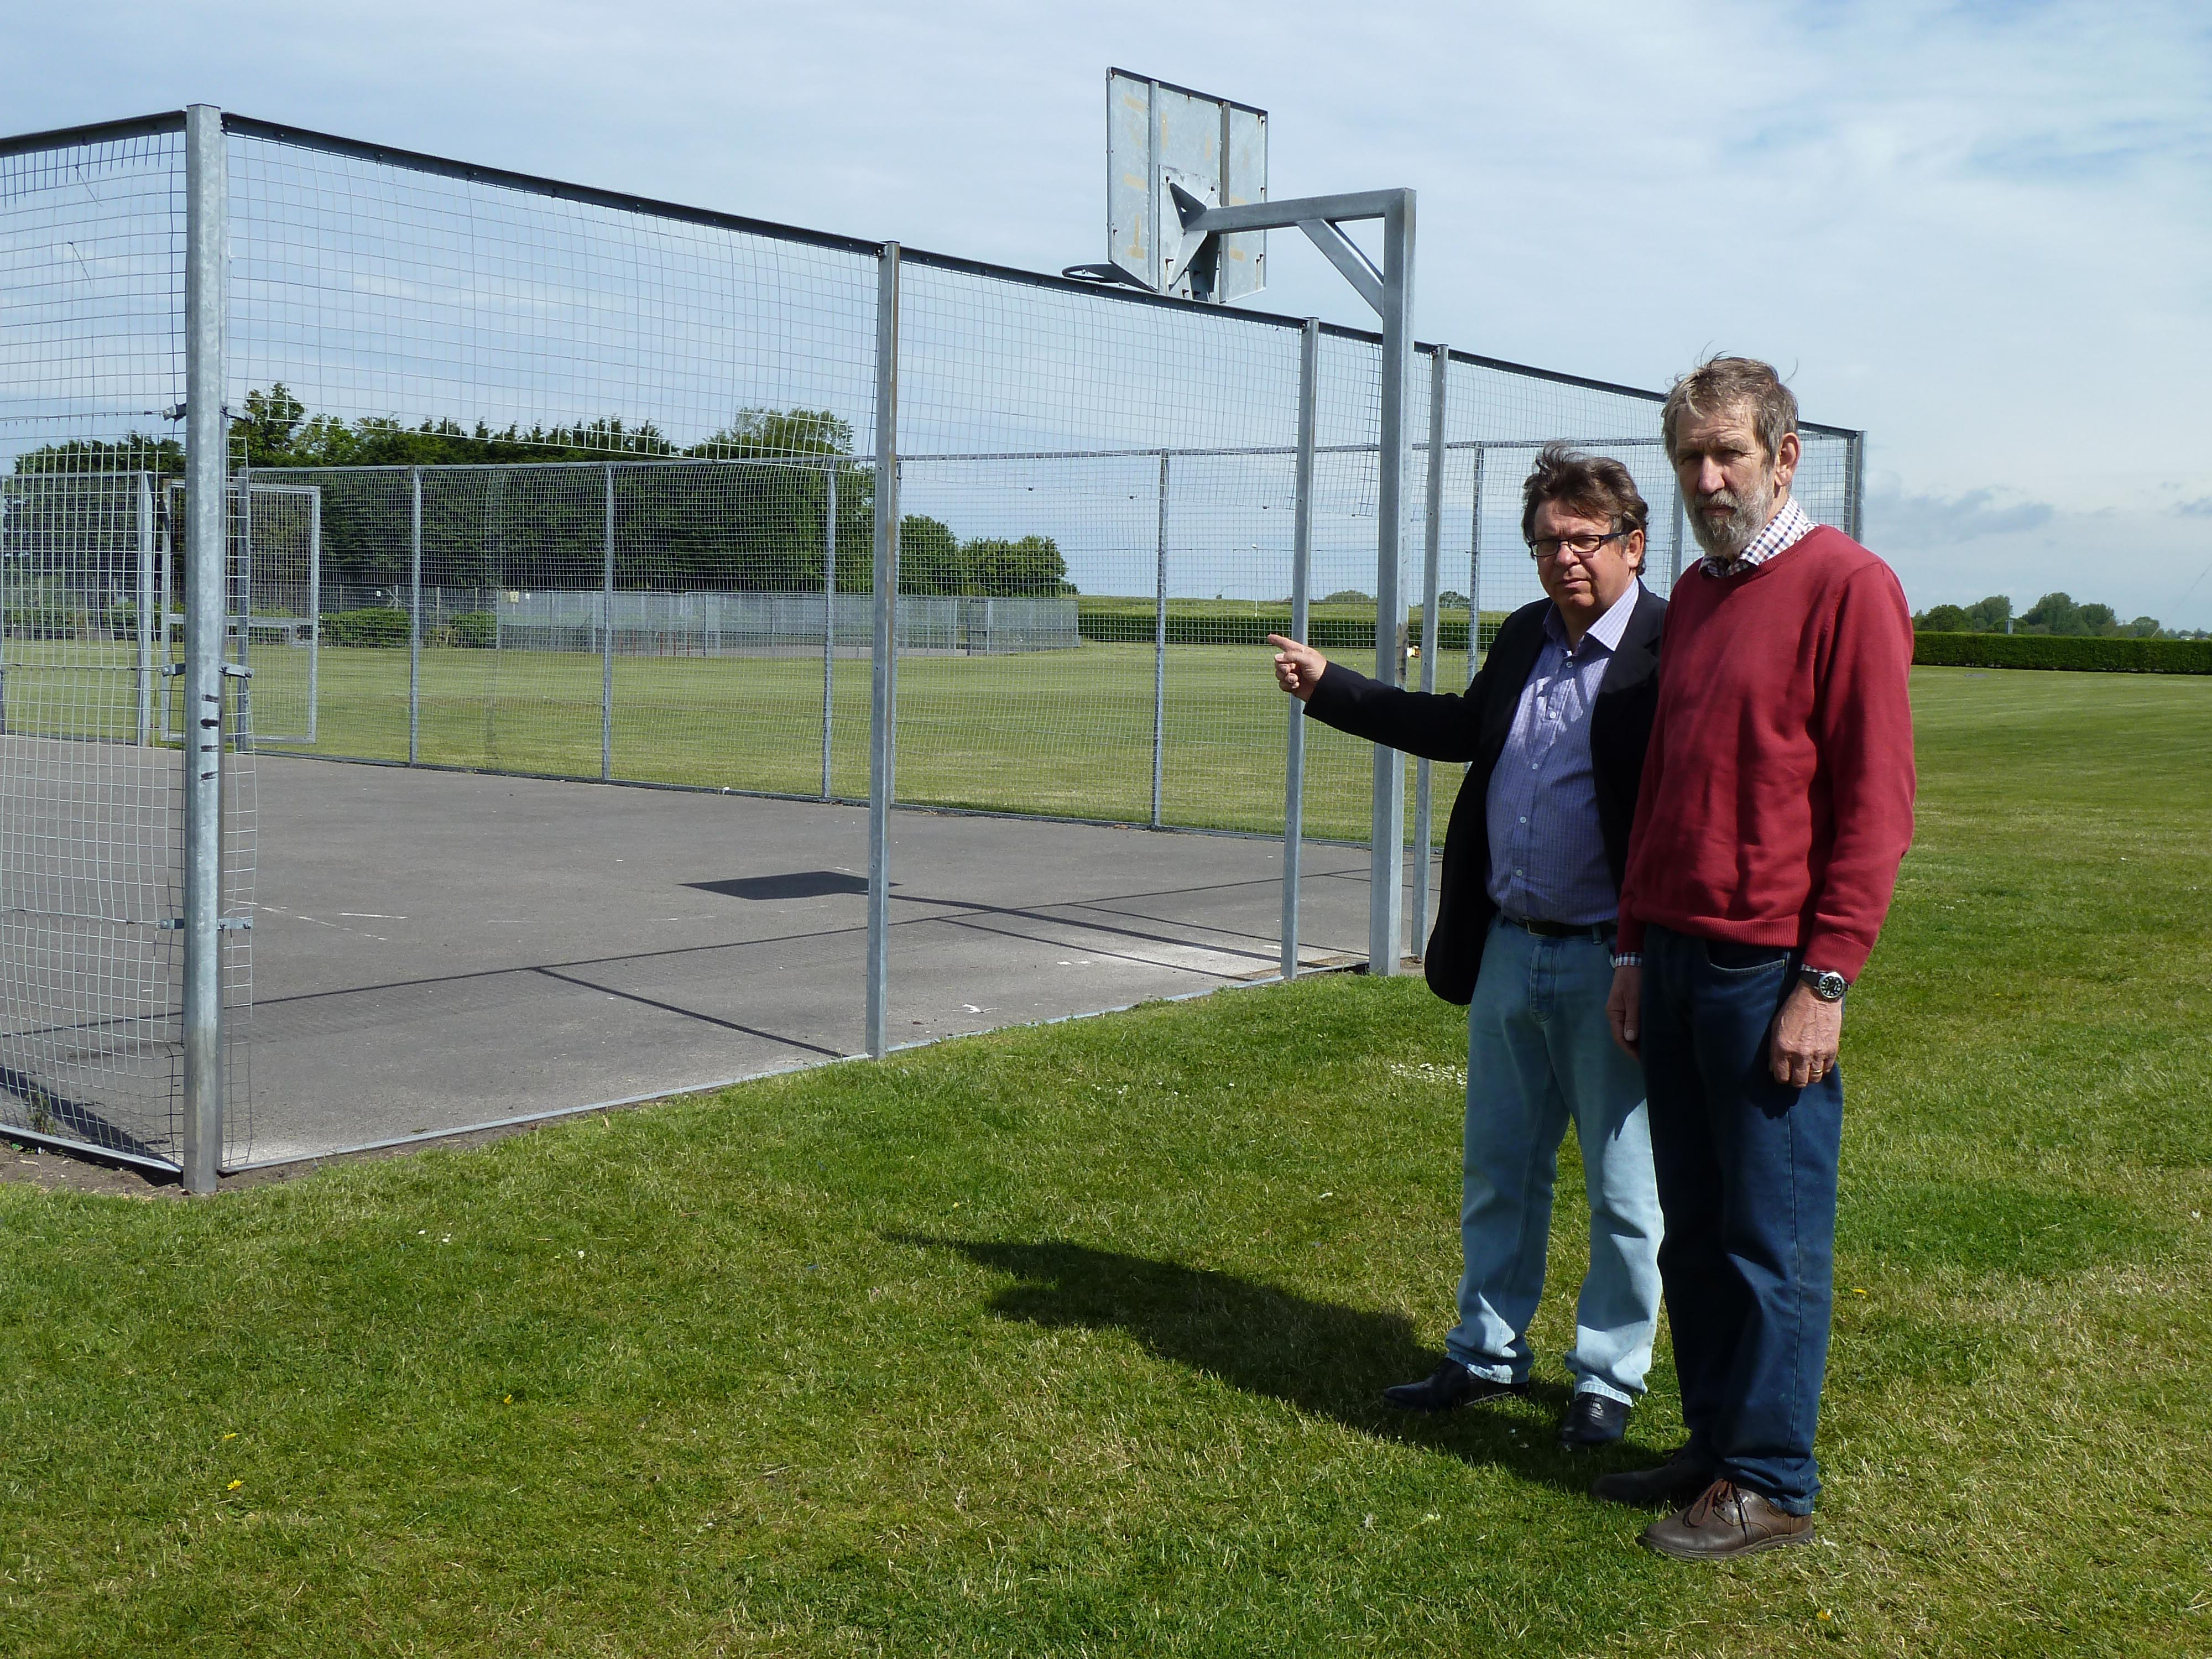 Lydiate Parish Council chairman Cllr John Bailey and vice chairman Cllr Andy Wilson at the Sandy Lane basketball court where sections of the fencing was also stolen